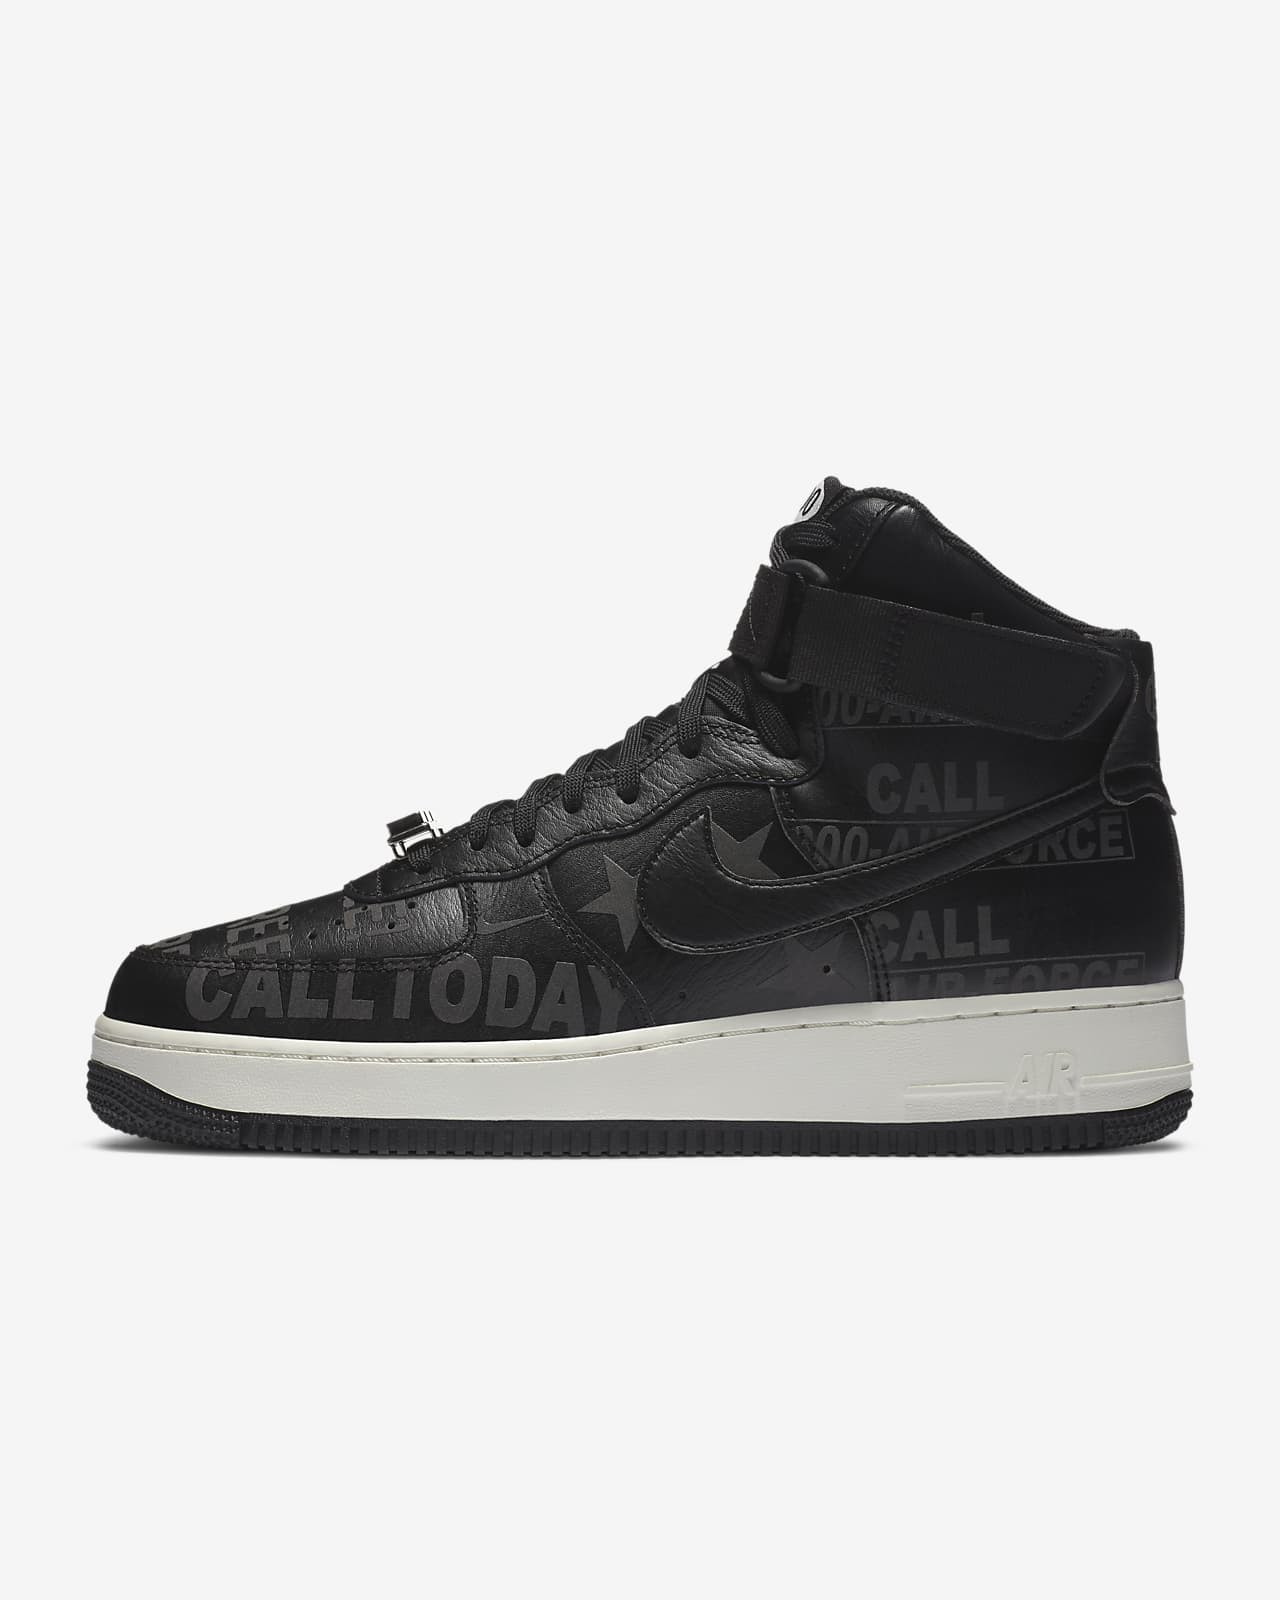 Nike Air Force 1 High '07 PRM 男子运动鞋